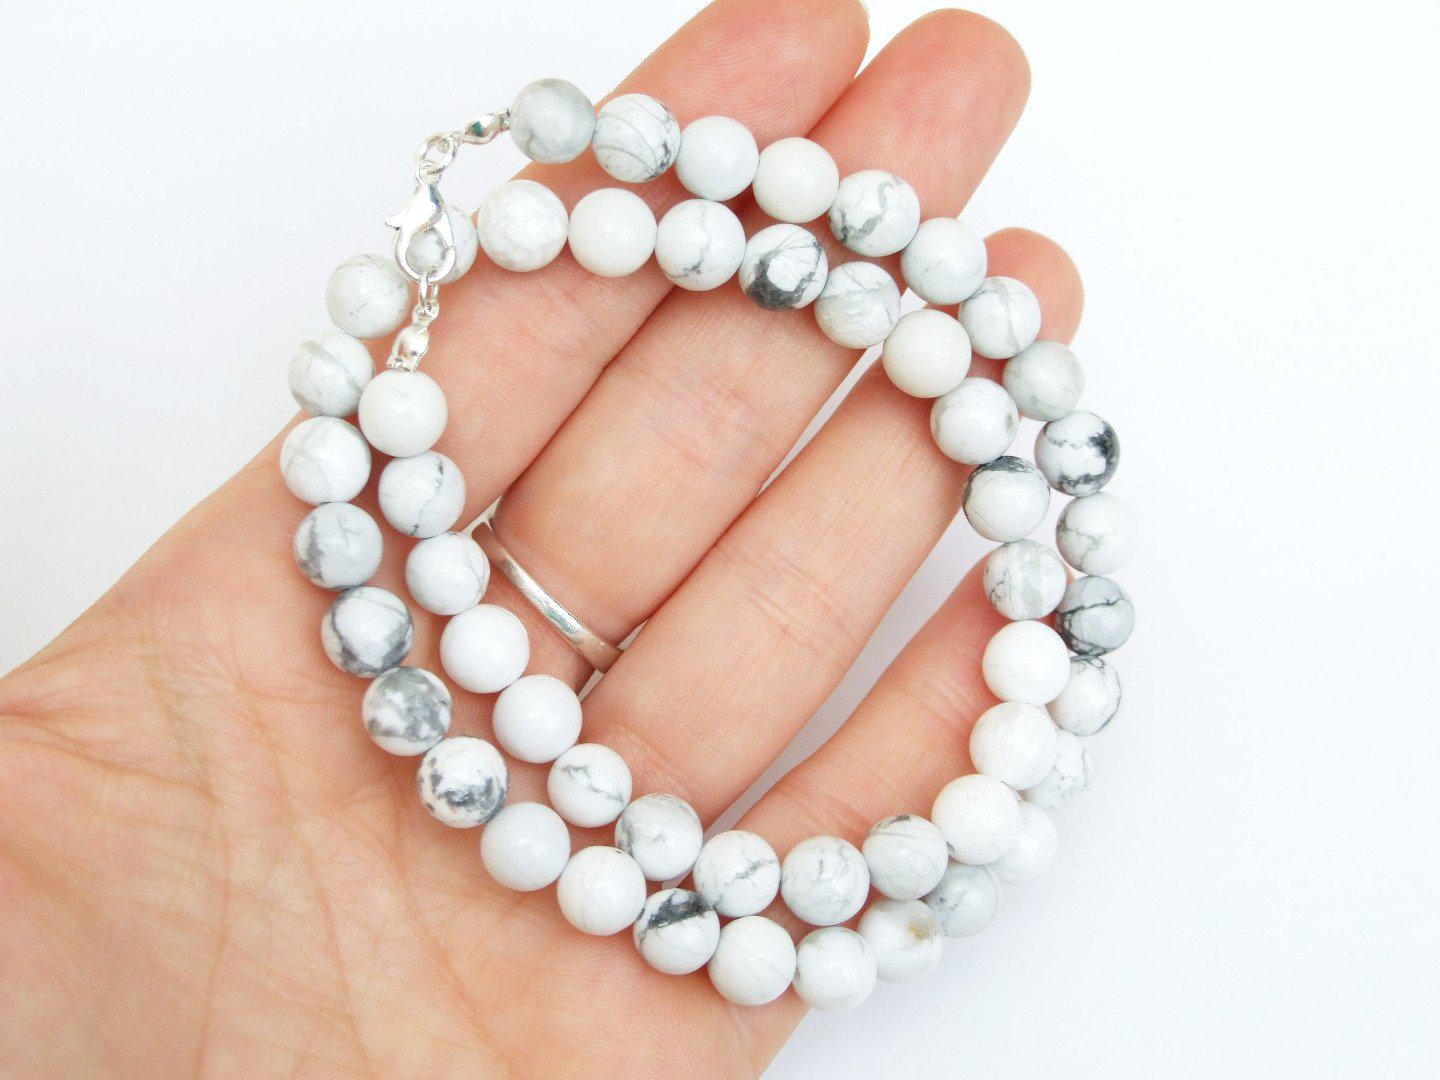 White-Howlite-Natural-Gemstone-Necklace-8mm-Beaded-16-30inch-Healing-Stone thumbnail 6